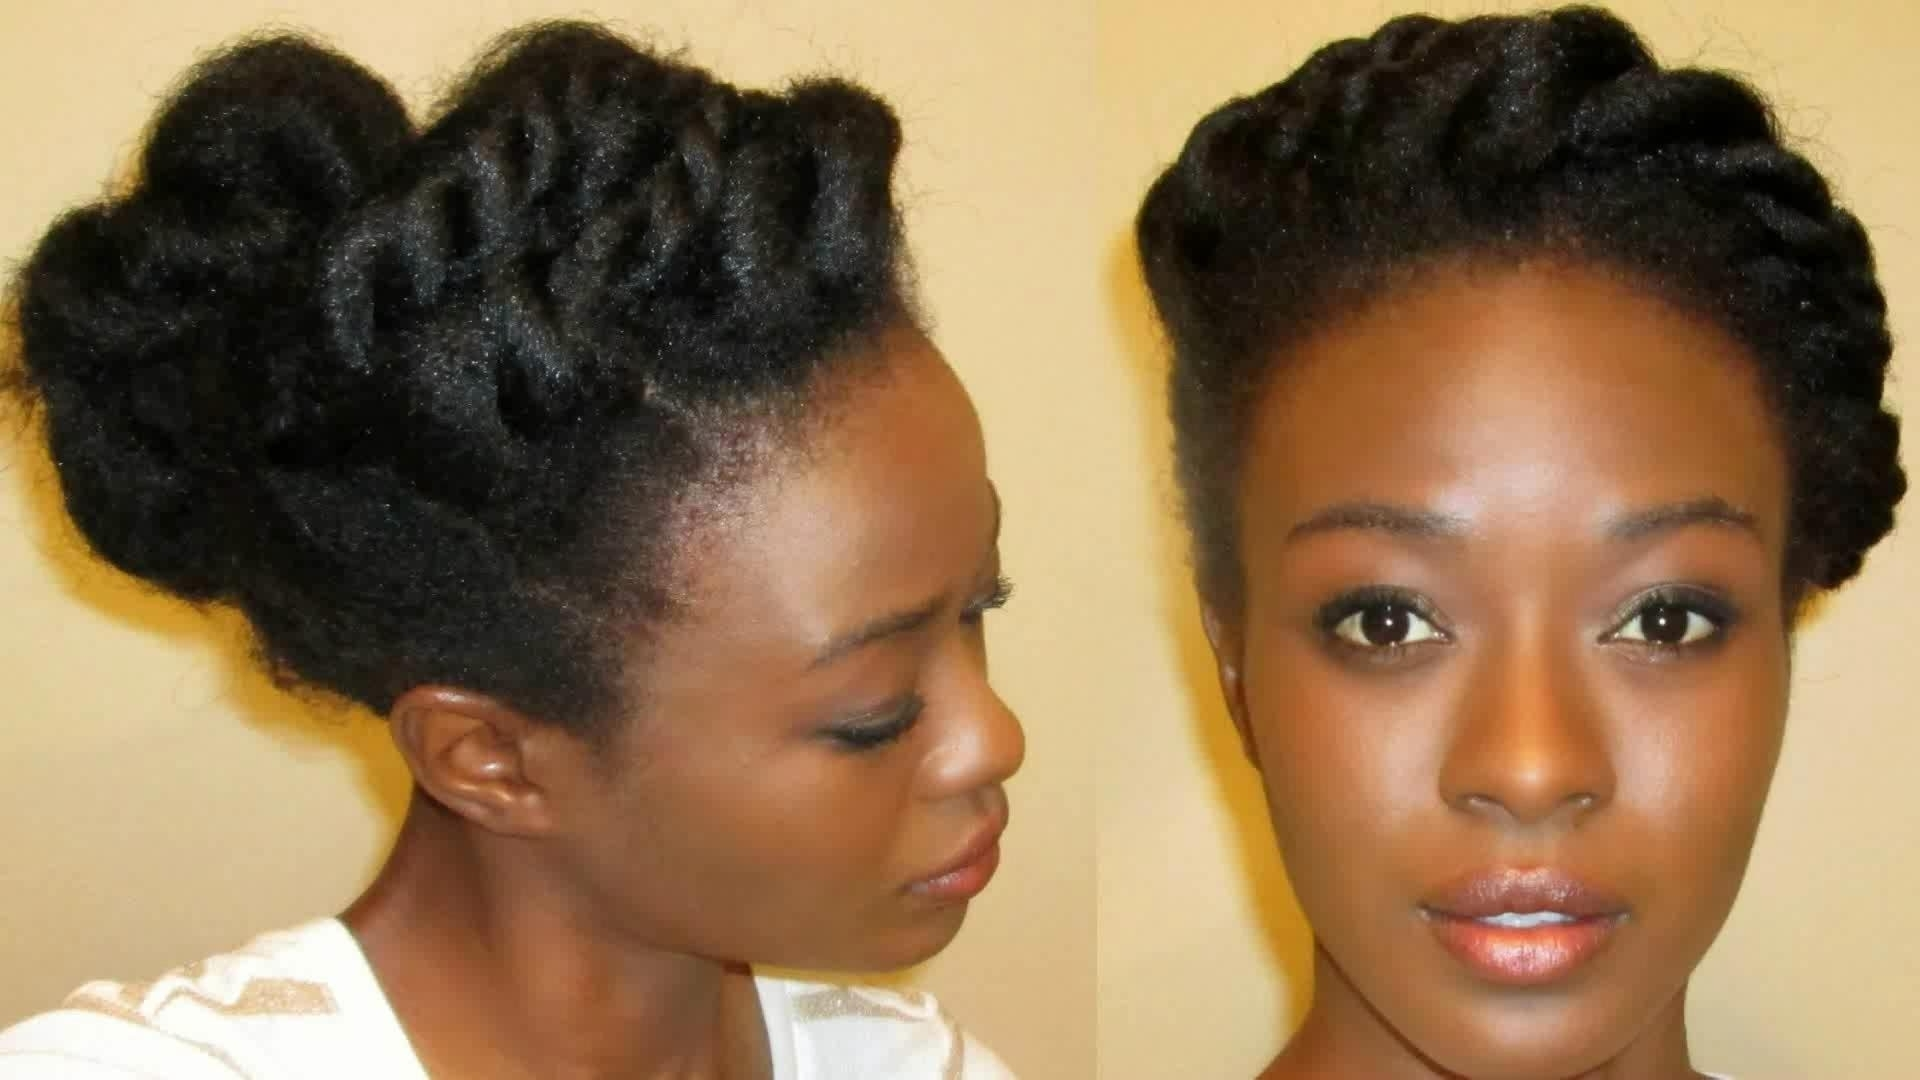 Two Strand Twist Updo On Stretched 4C Natural Hair – Youtube For Two Strand Twist Updo Hairstyles (View 16 of 16)